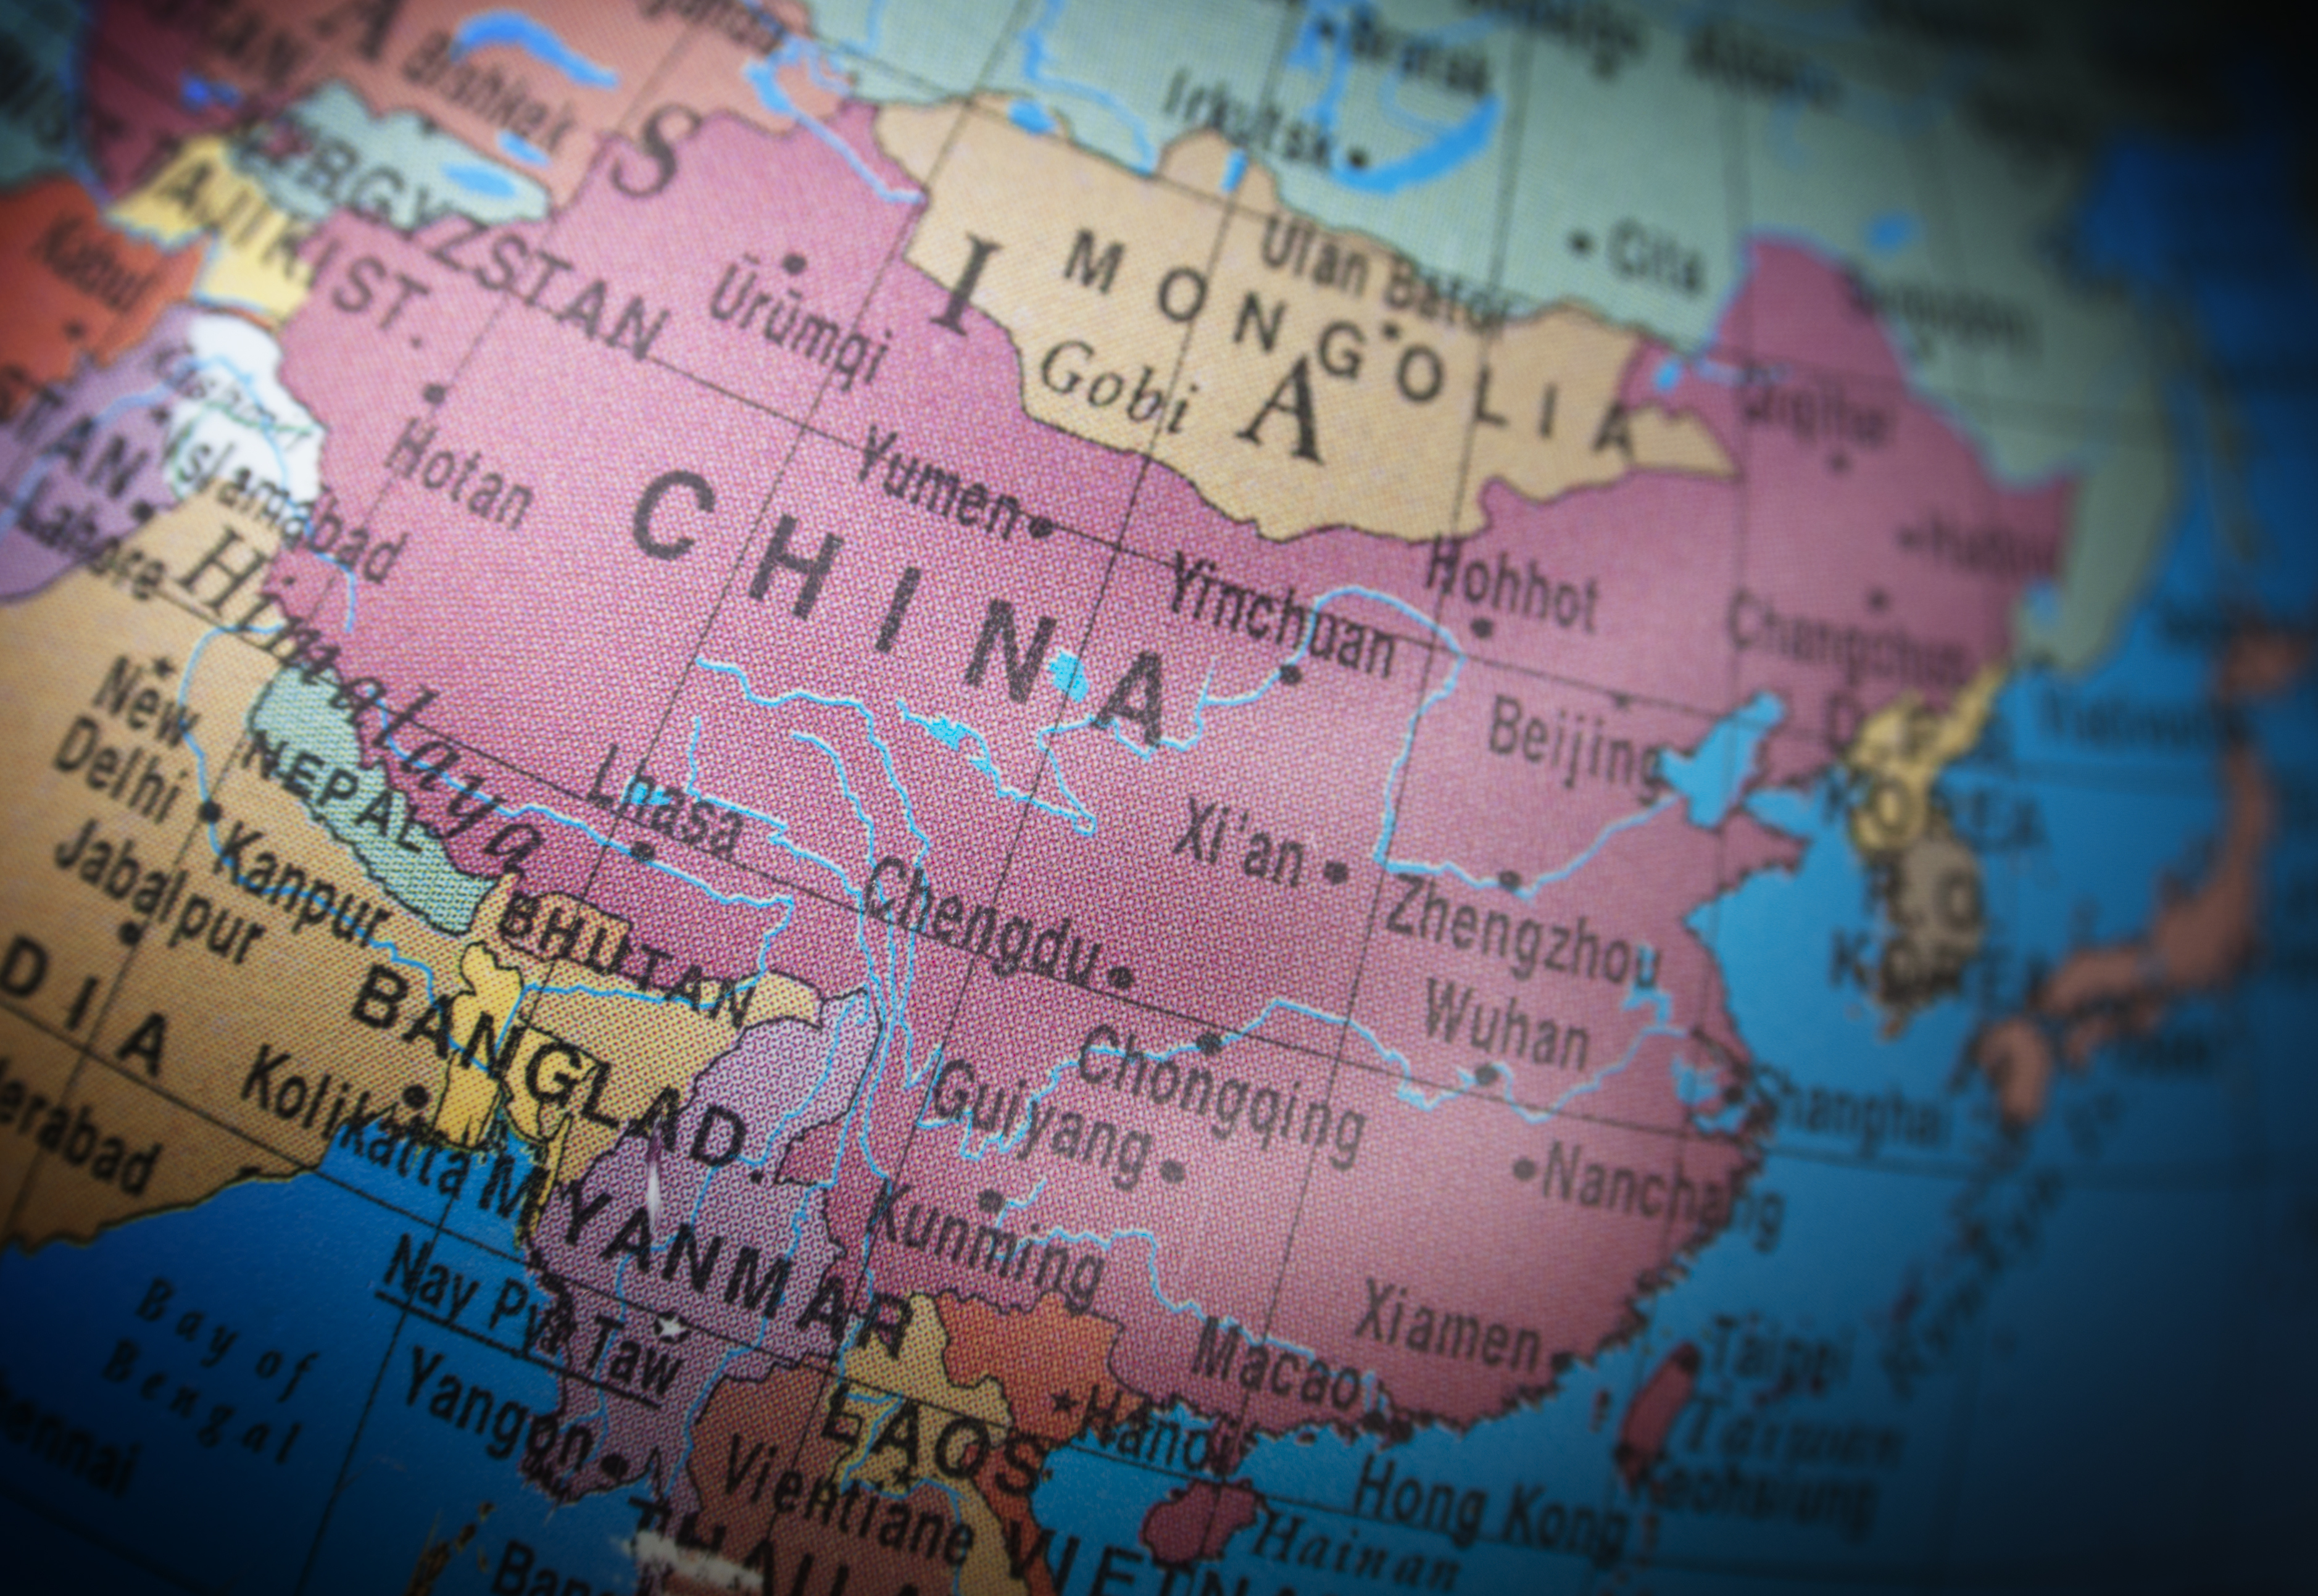 Image: iStock© - Topographical view of China